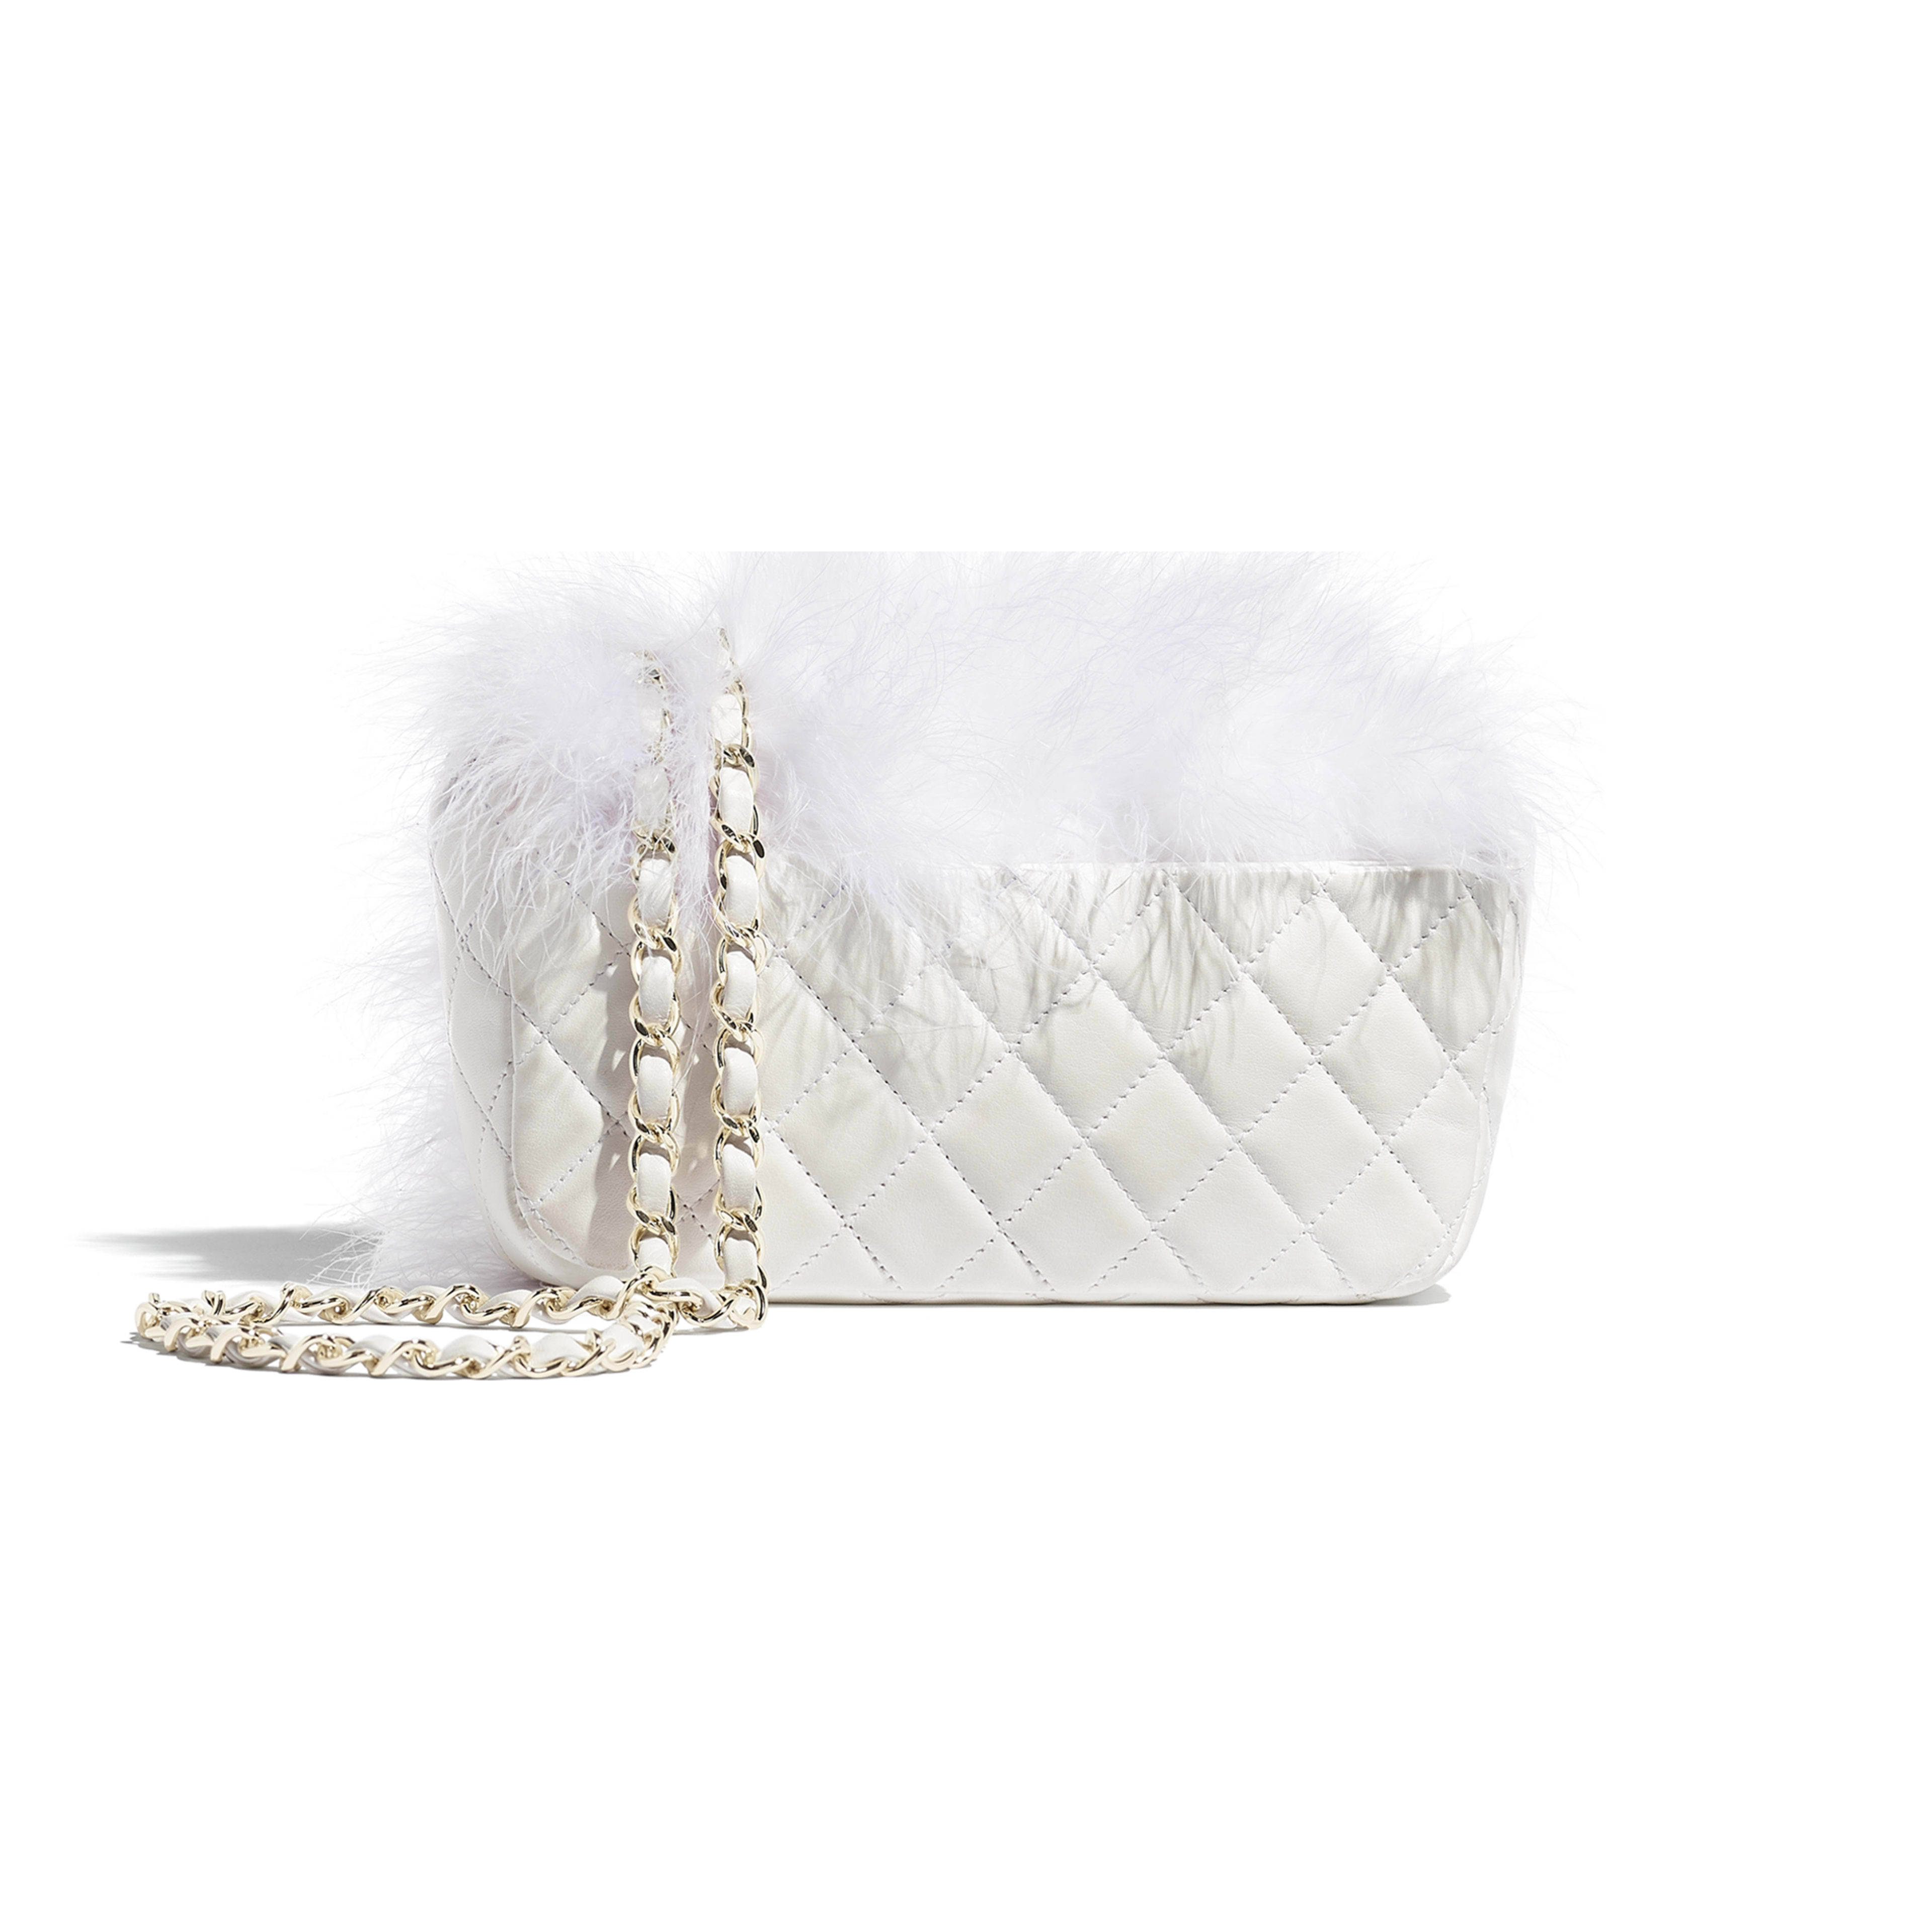 Flap Bag - White - Feathers, Lambskin & Gold-Tone Metal - Alternative view - see full sized version